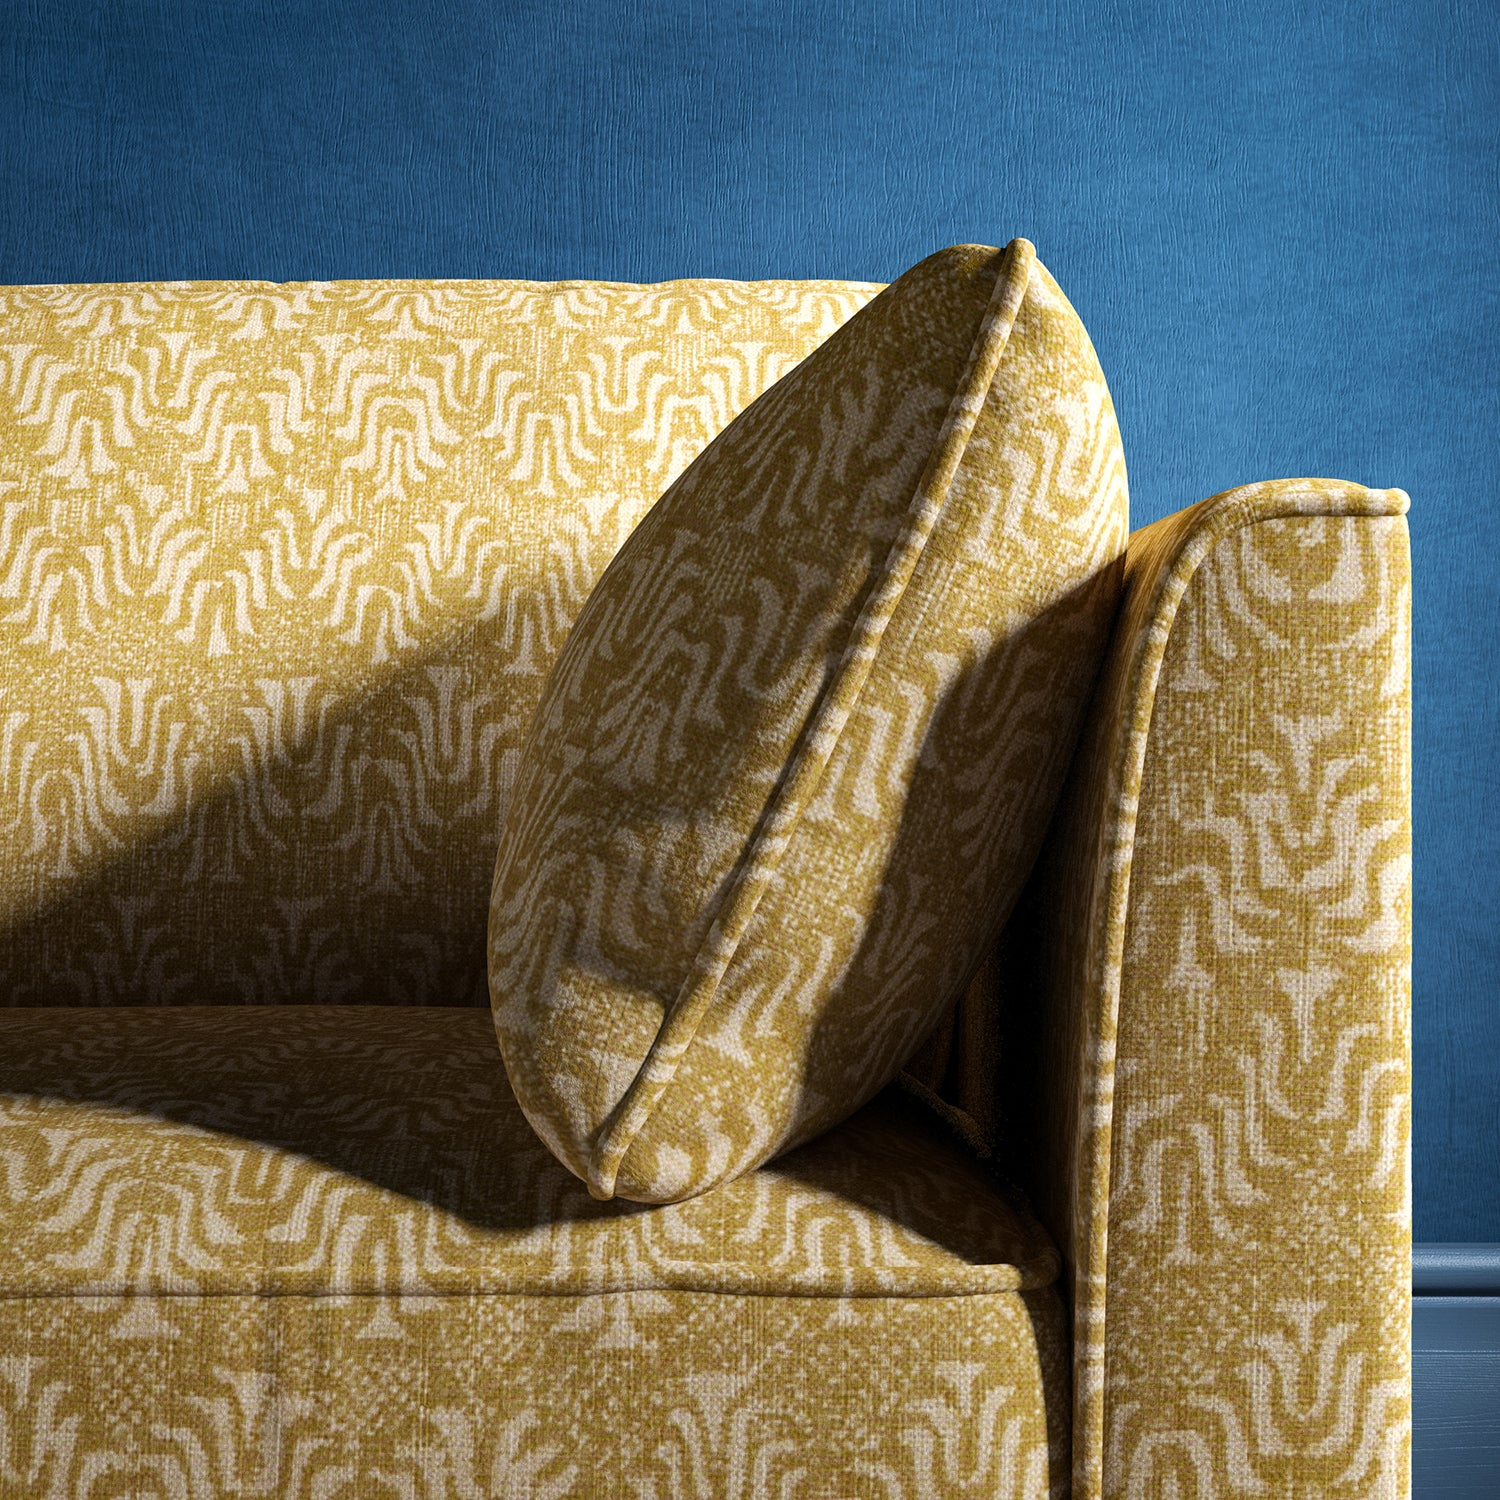 Sofa upholstered in a yellow and neutral jacquard weave upholstery fabric